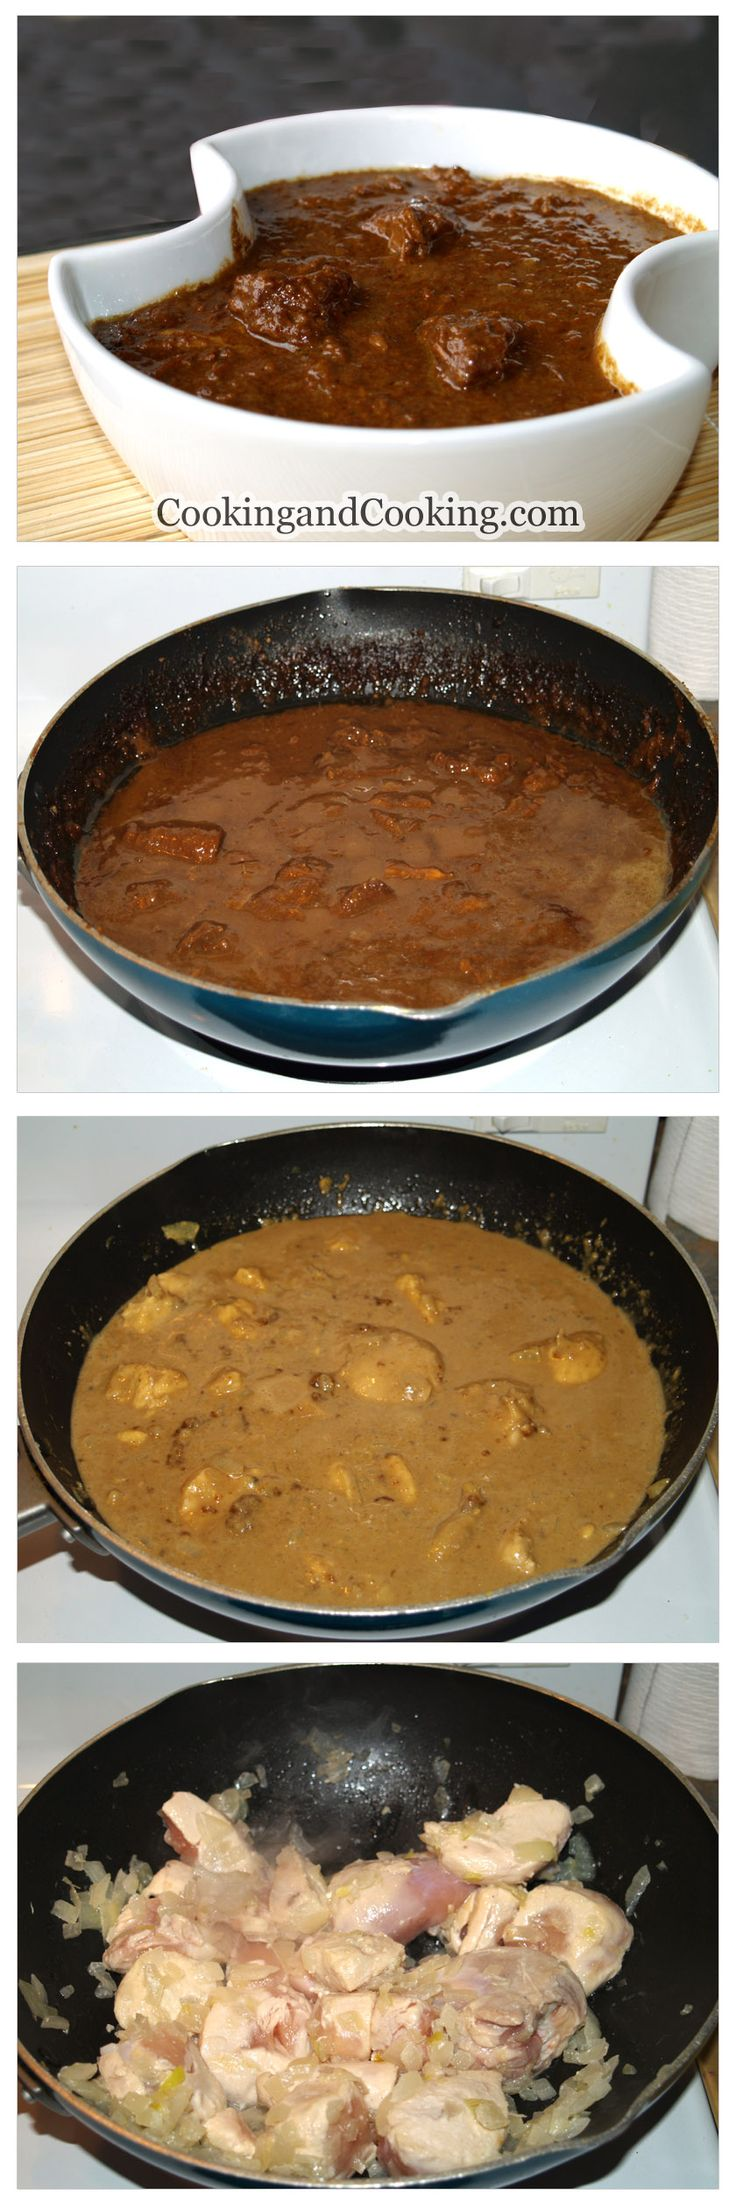 Persian Pomegranate Walnut Stew Recipe- very delicious! I puree the walnut mixture before adding to the chicken.